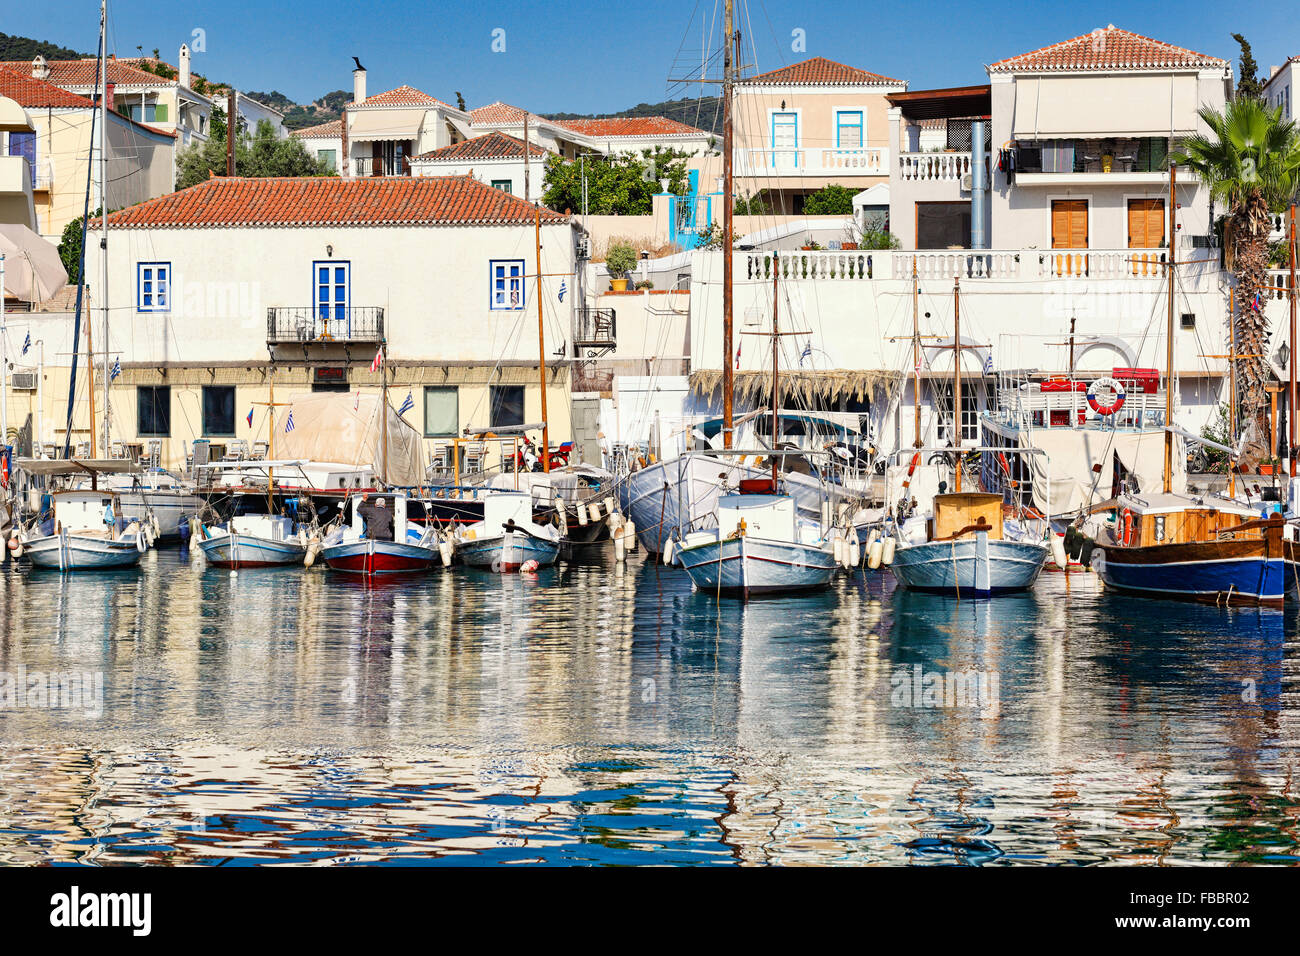 Boats in the old port of Spetses island, Greece - Stock Image